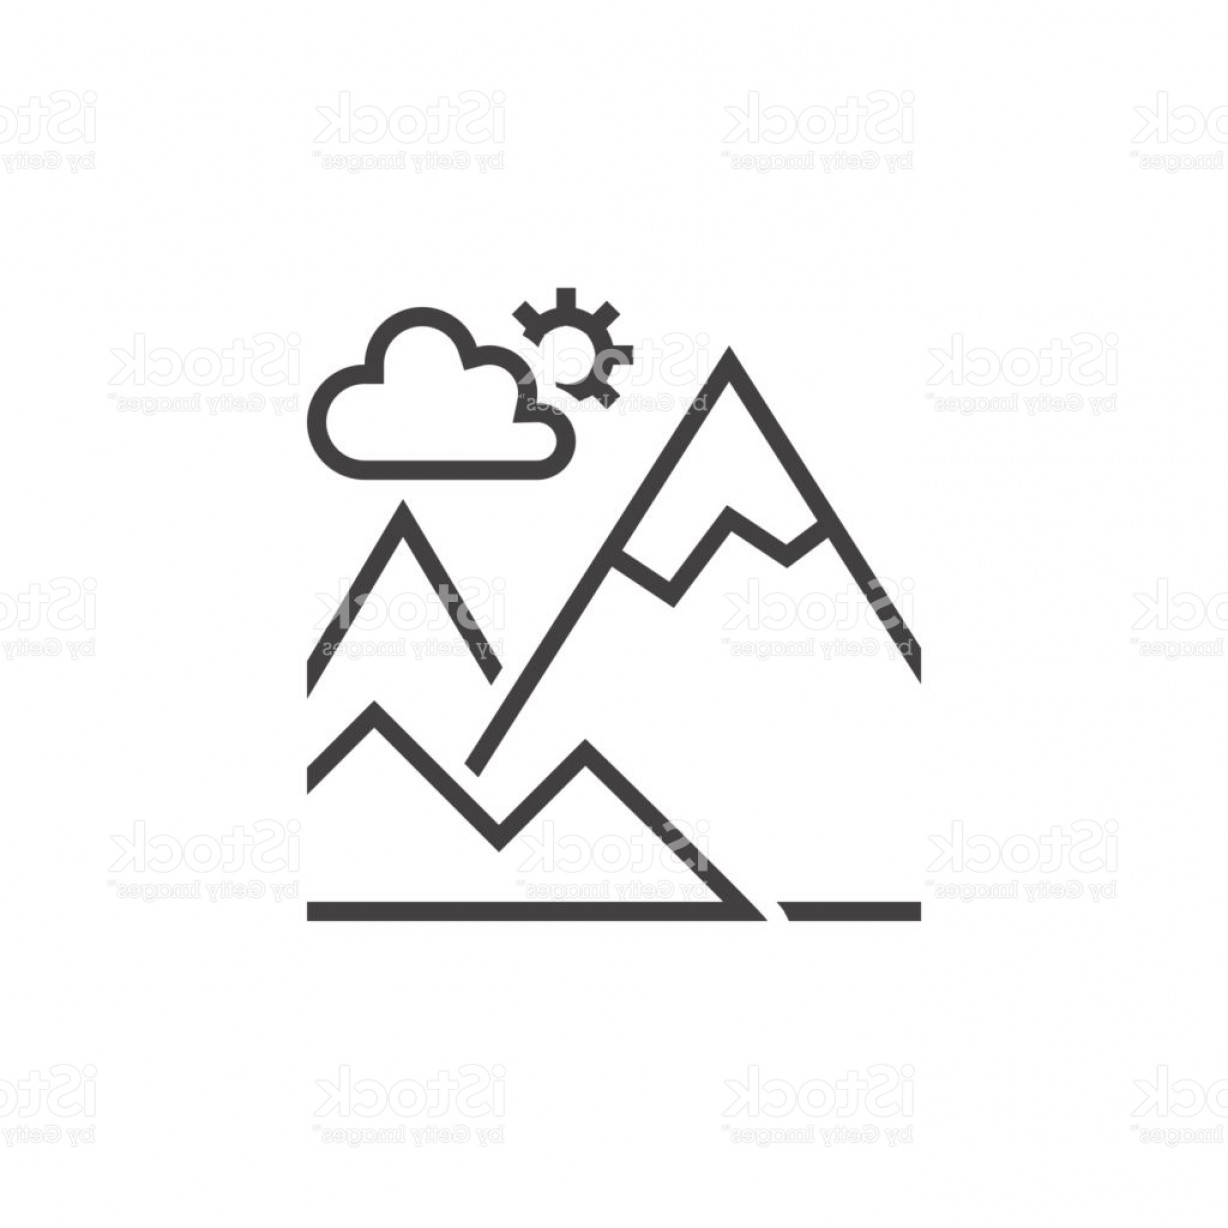 Rocky Mountain Line Art Vector: Mountain Line Icon Outline Terrain Vector Logo Linear Pictogram Isolated On White Gm